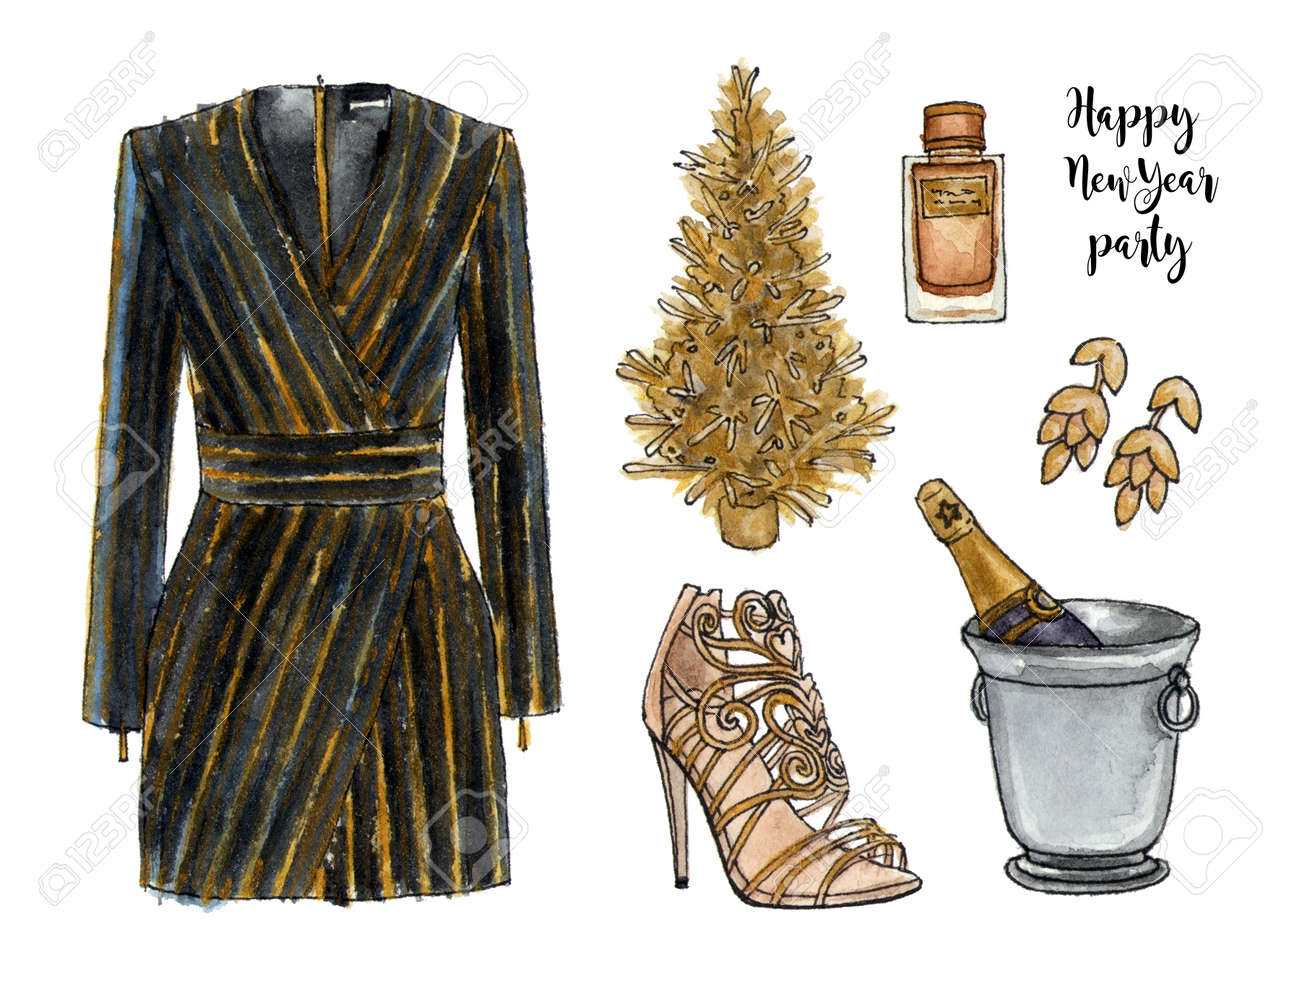 dc5ddb9afa1b golden happy new year party look. watercolor hand drawn sketch fashion  outfit, a set